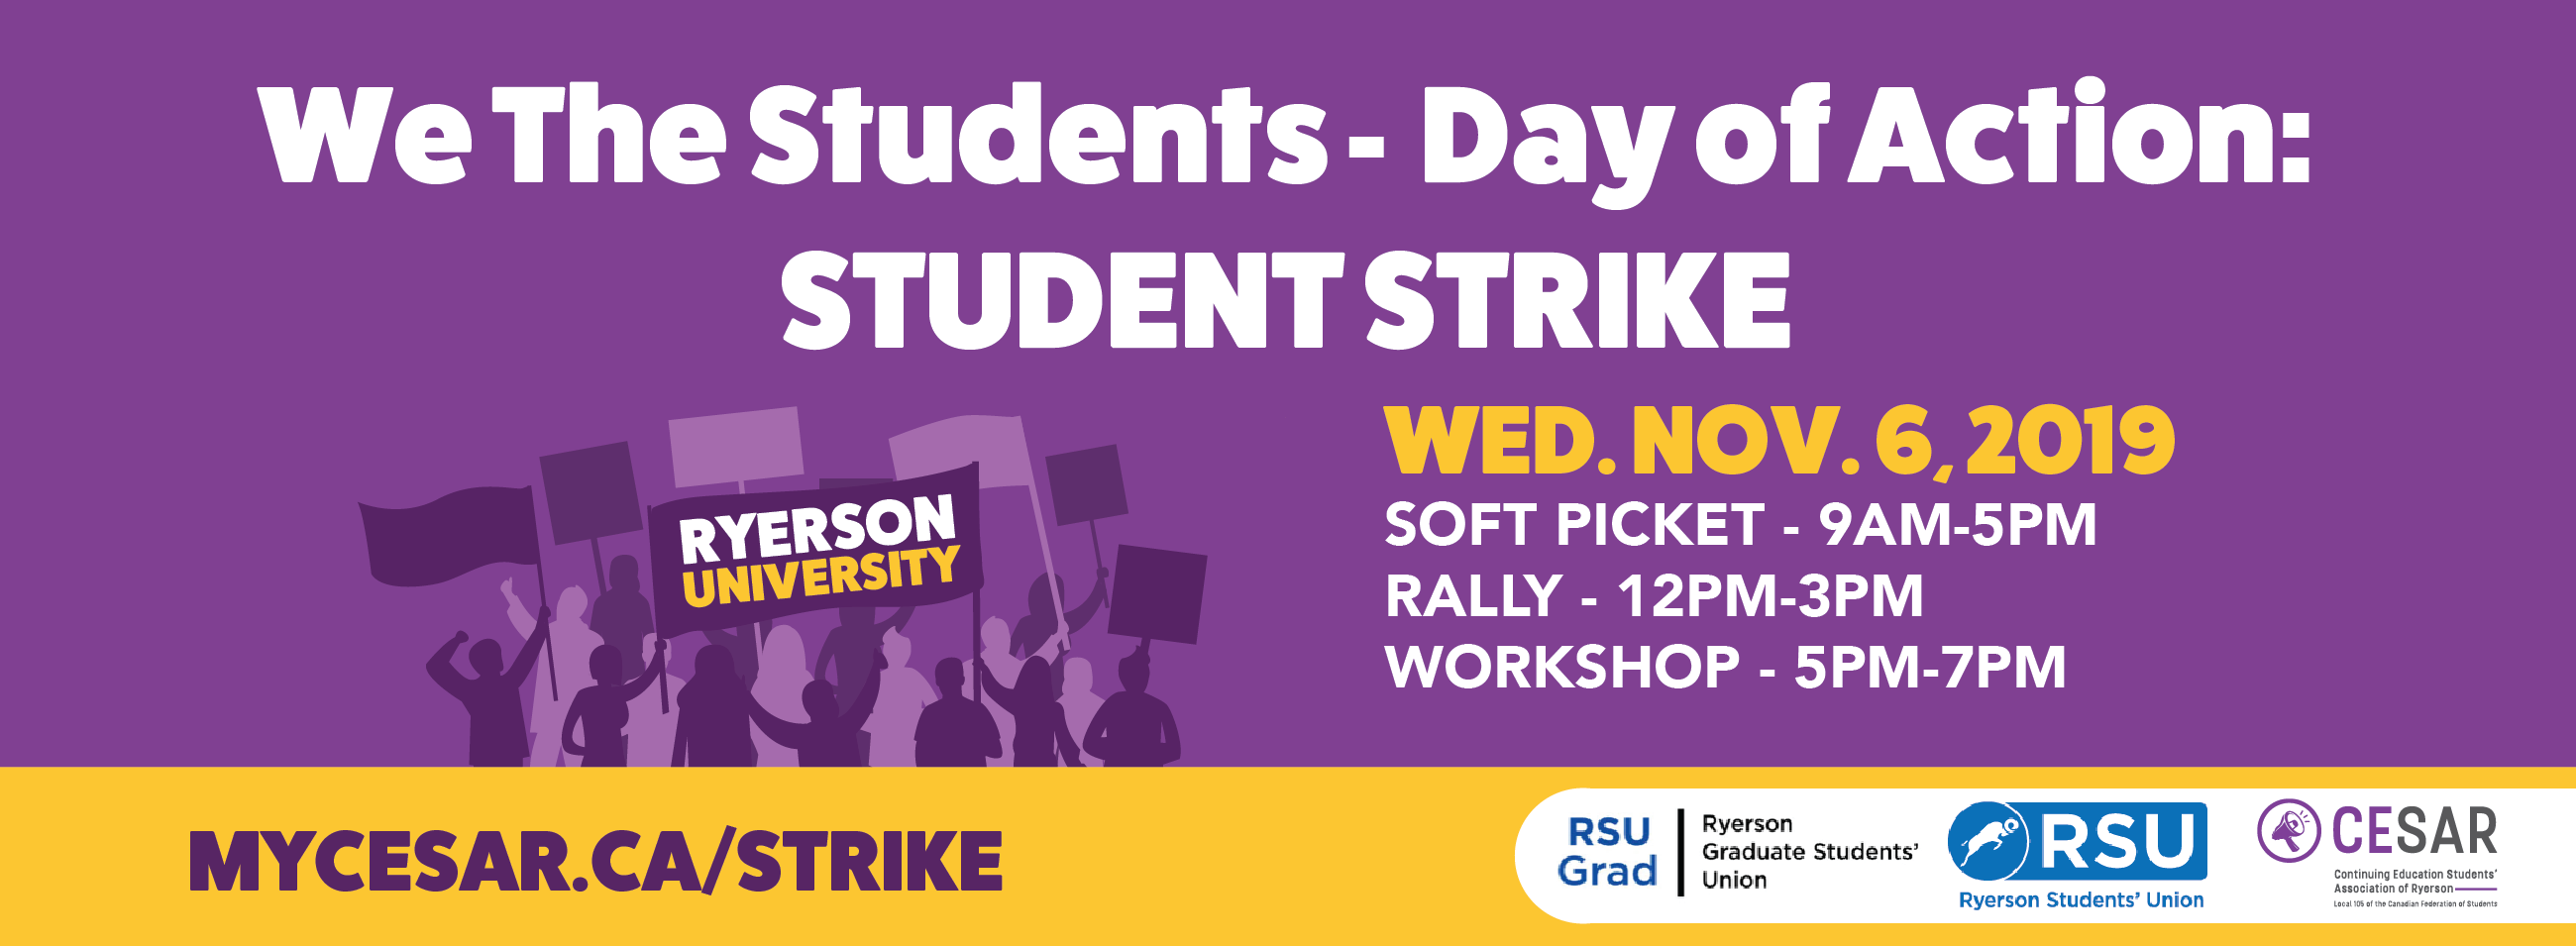 We the Students Day of Action: Student Strike